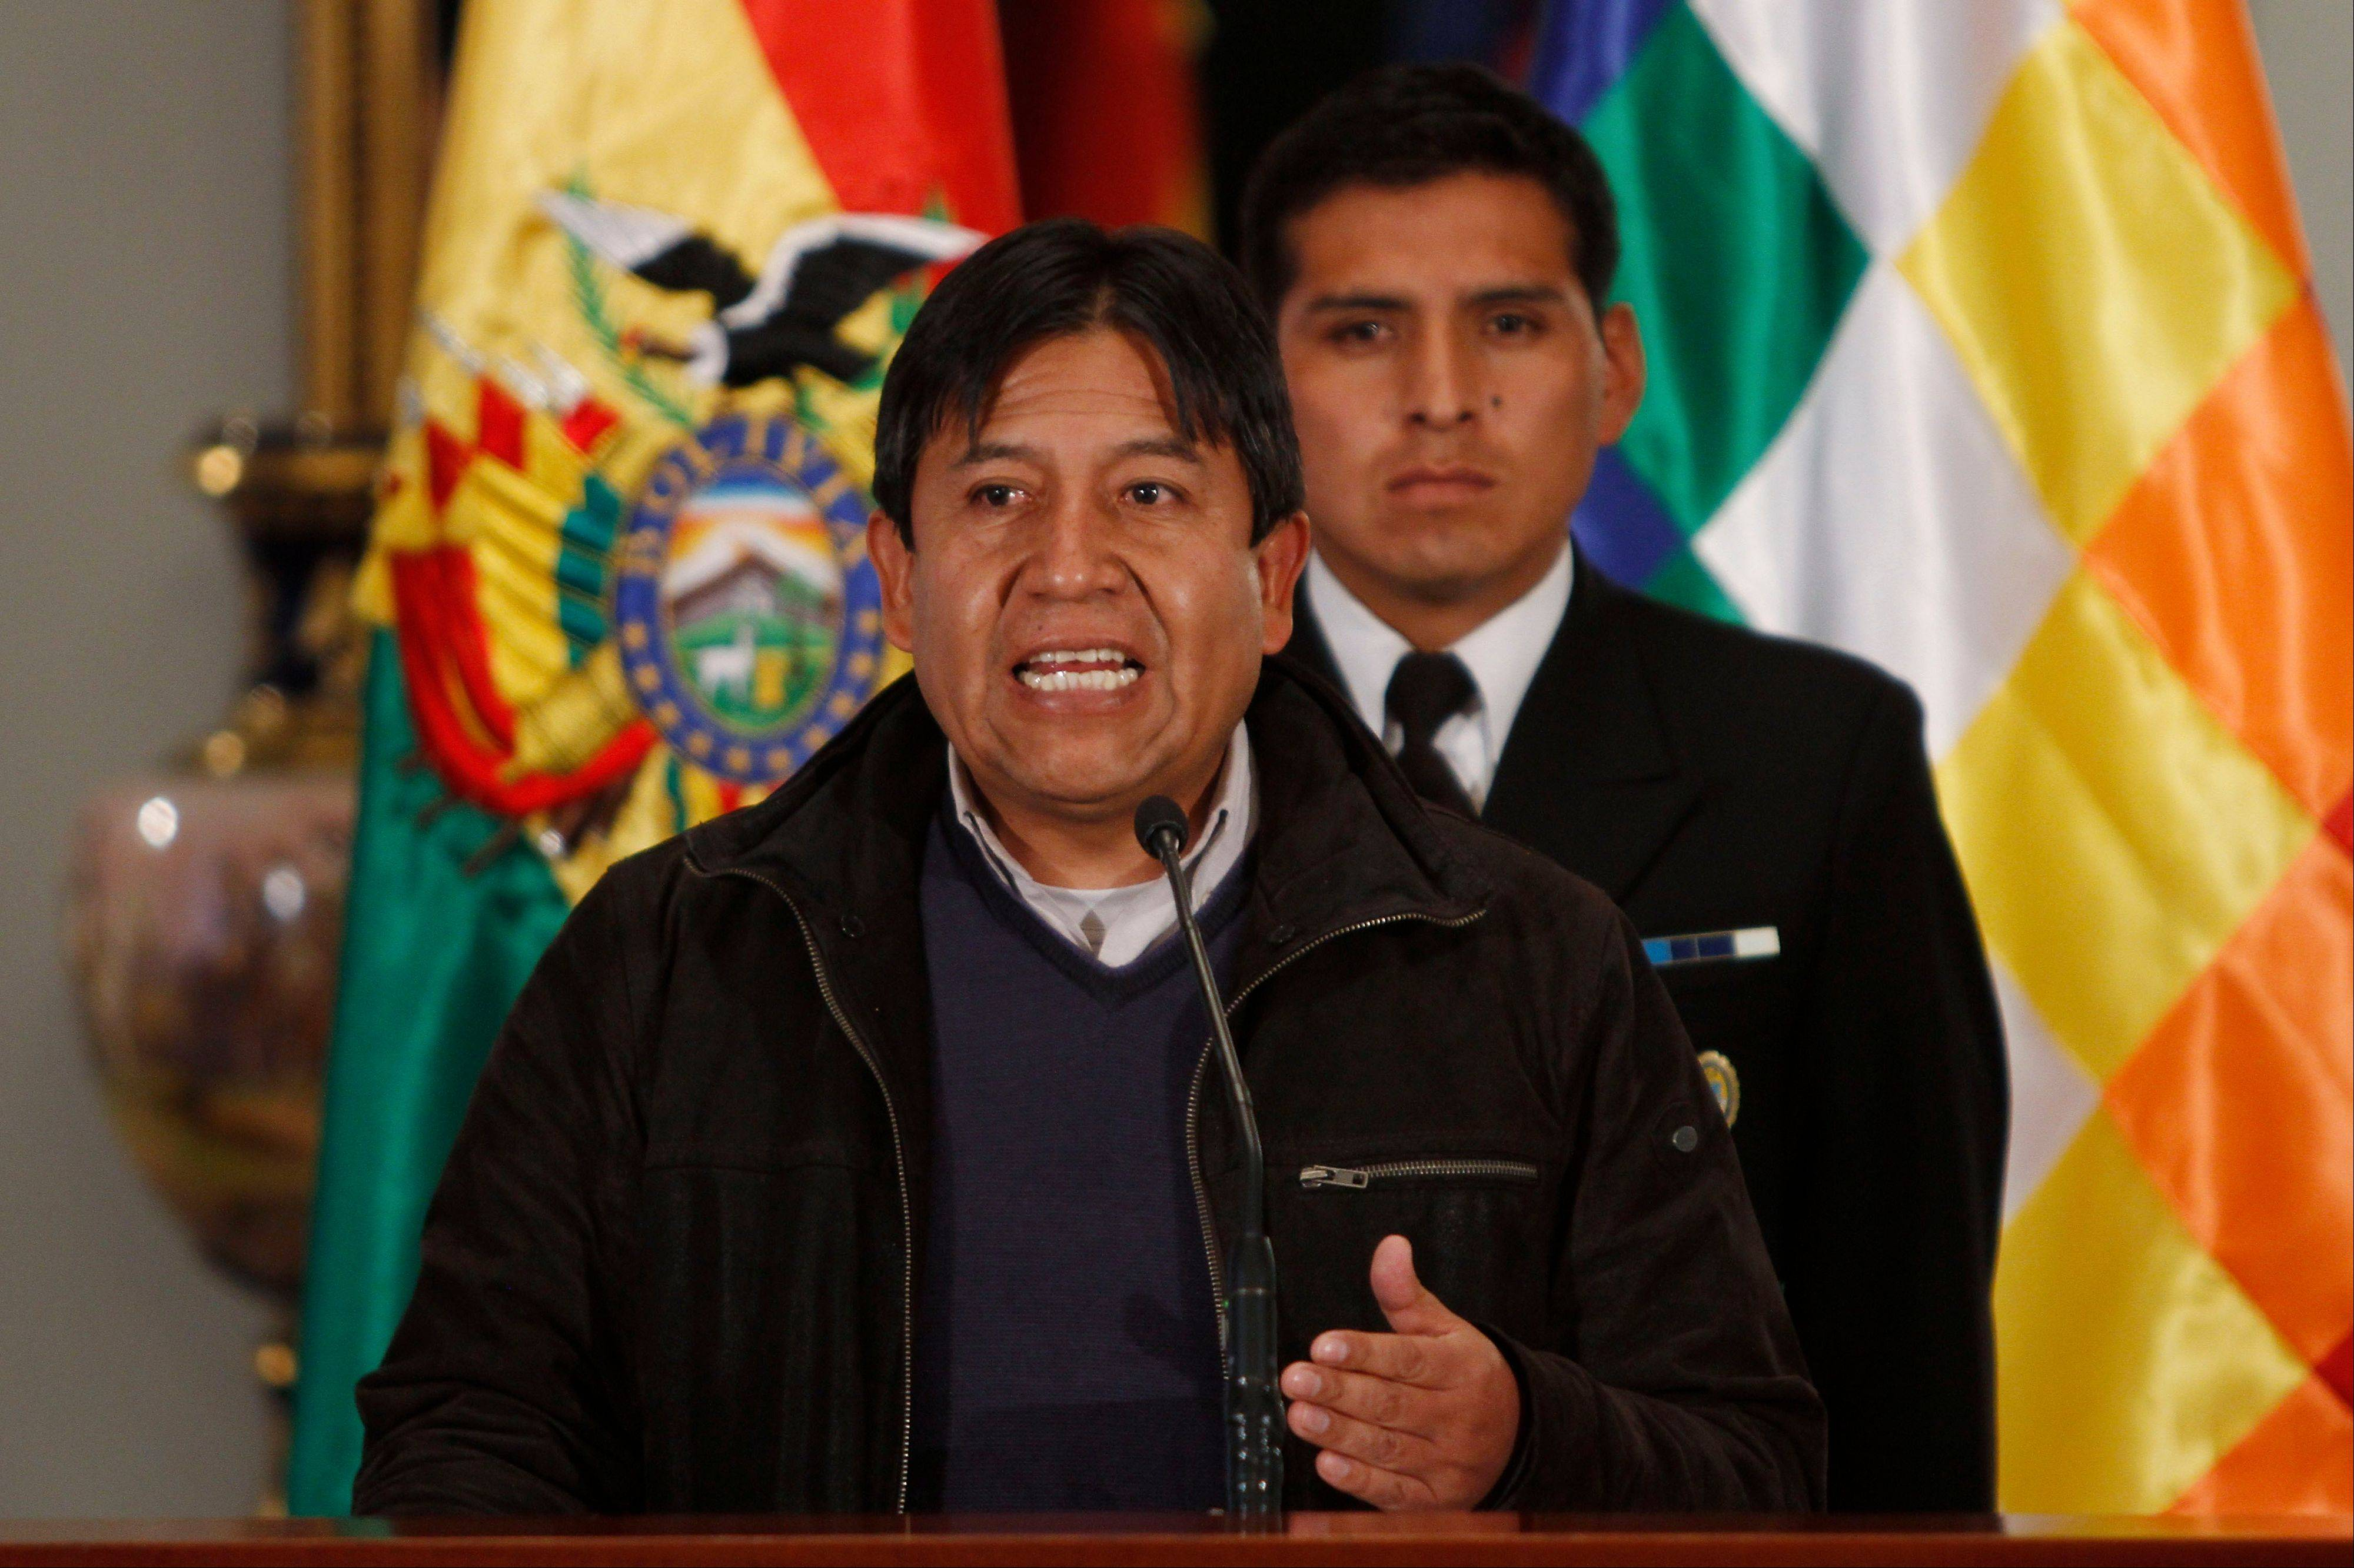 Bolivia's Foreign Minister David Choquehuanca, speaking in La Paz, Bolivia, Tuesday, said the plane bringing President Evo Morales home from Russia was rerouted to Austria after France and Portugal refused to let it to cross their airspace because of suspicions that NSA leaker Edward Snowden was on board.